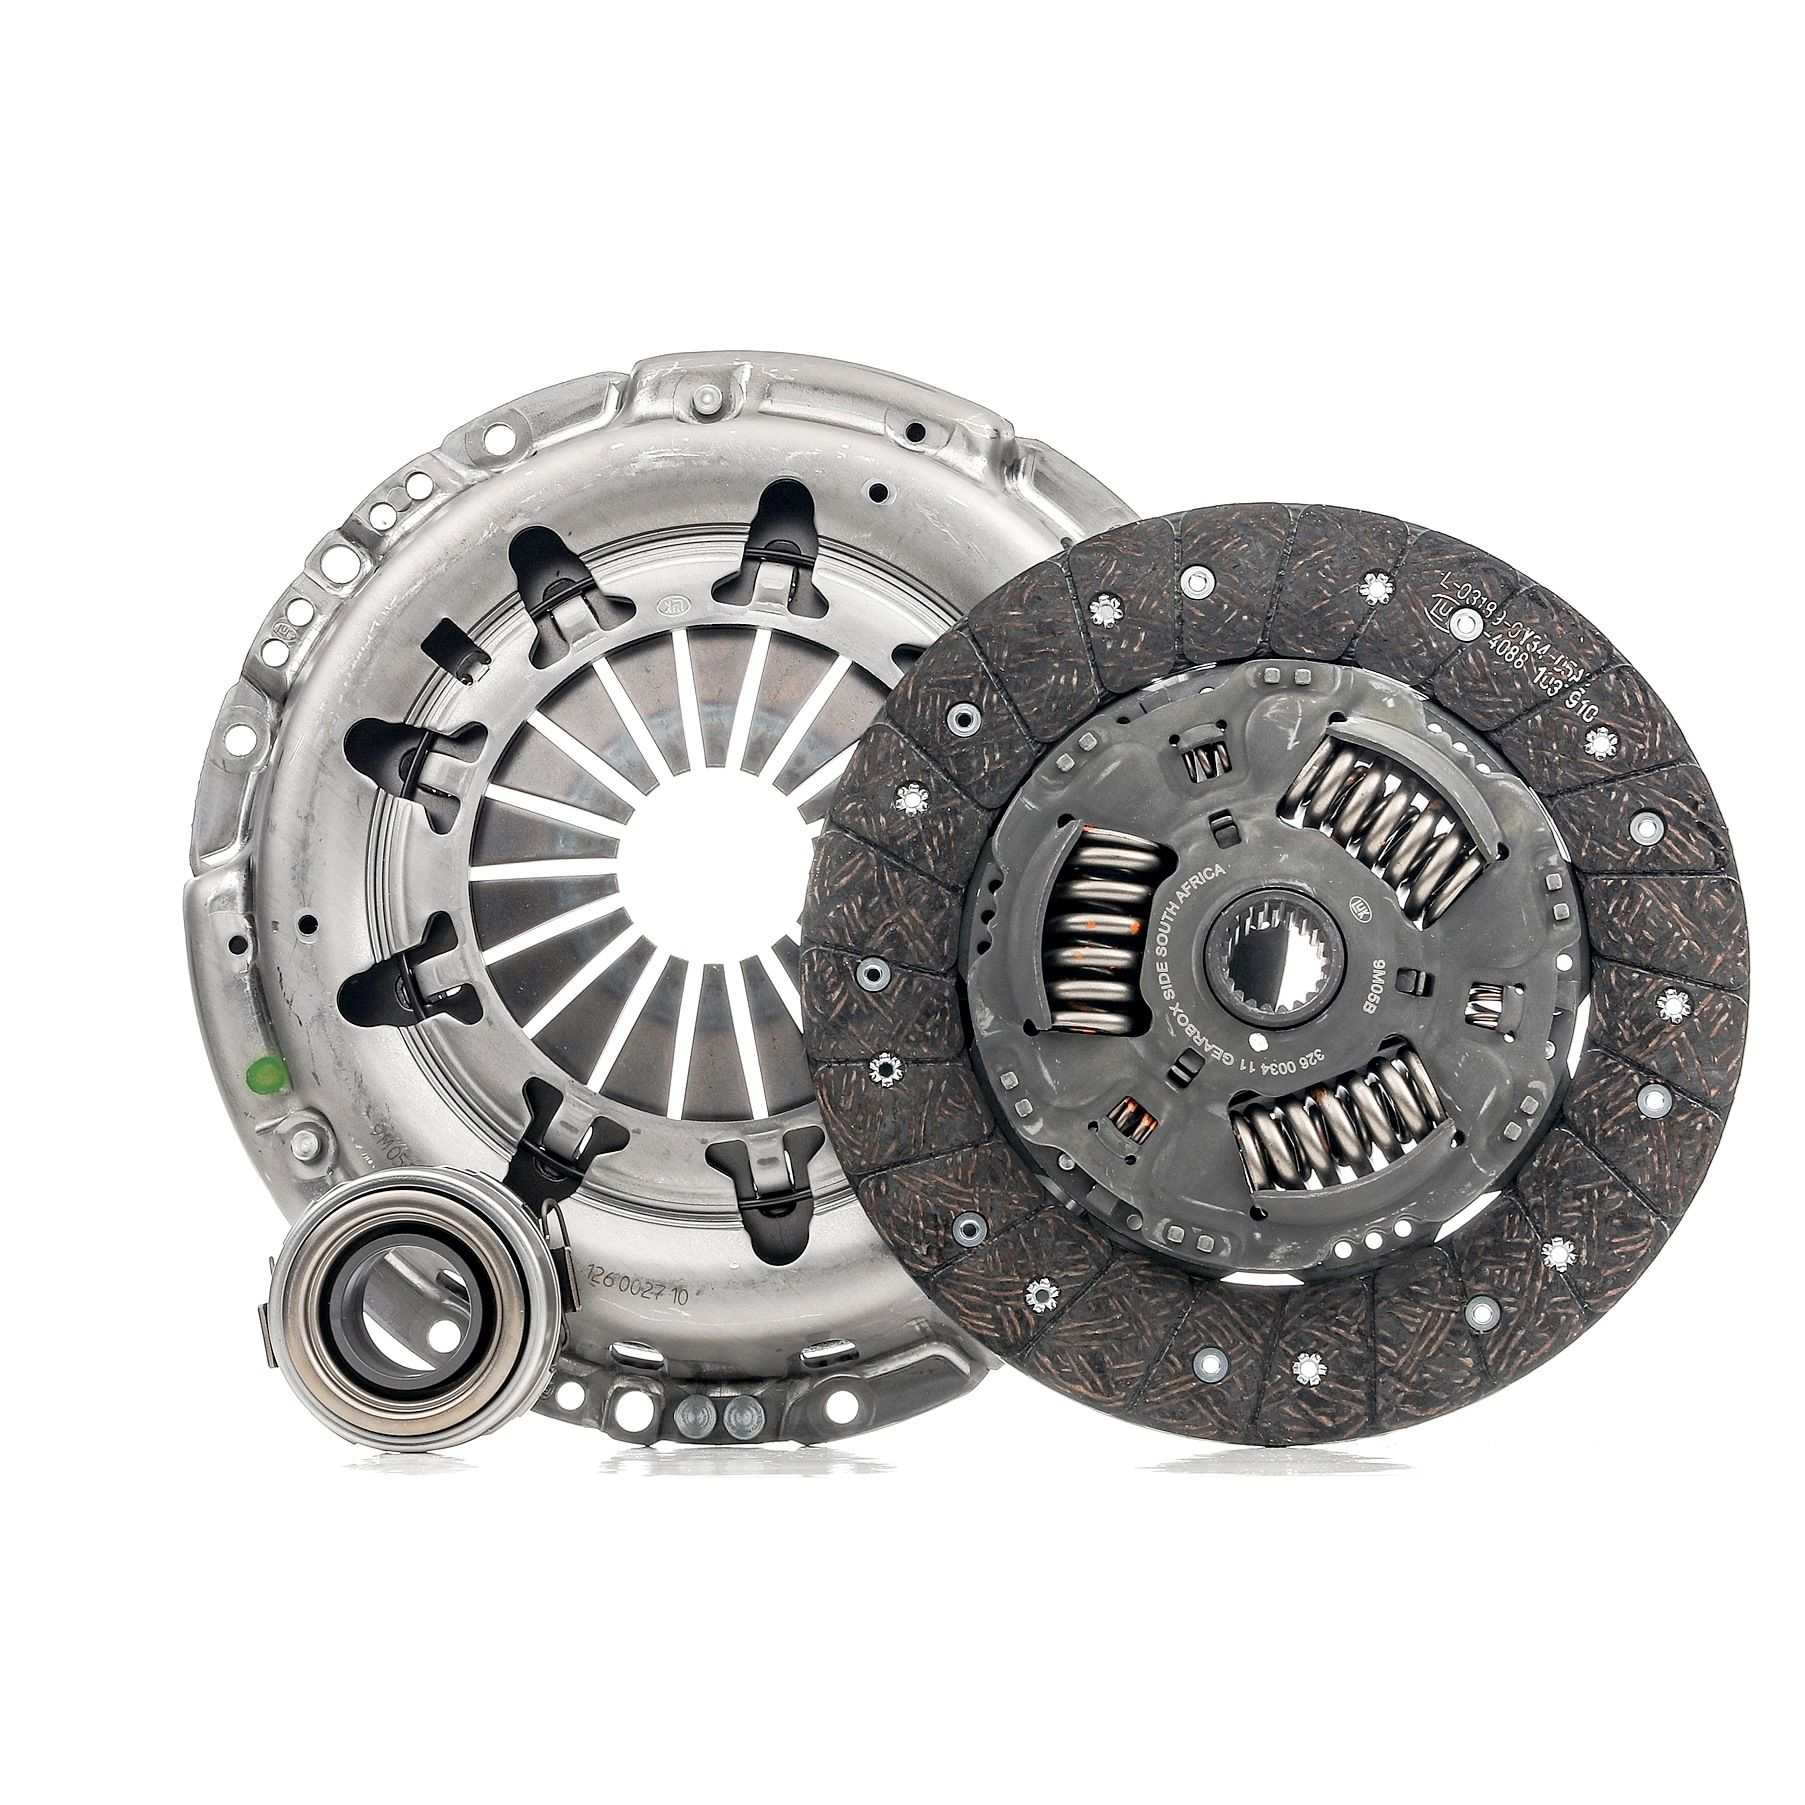 Complete clutch kit LuK 626 3015 60 rating